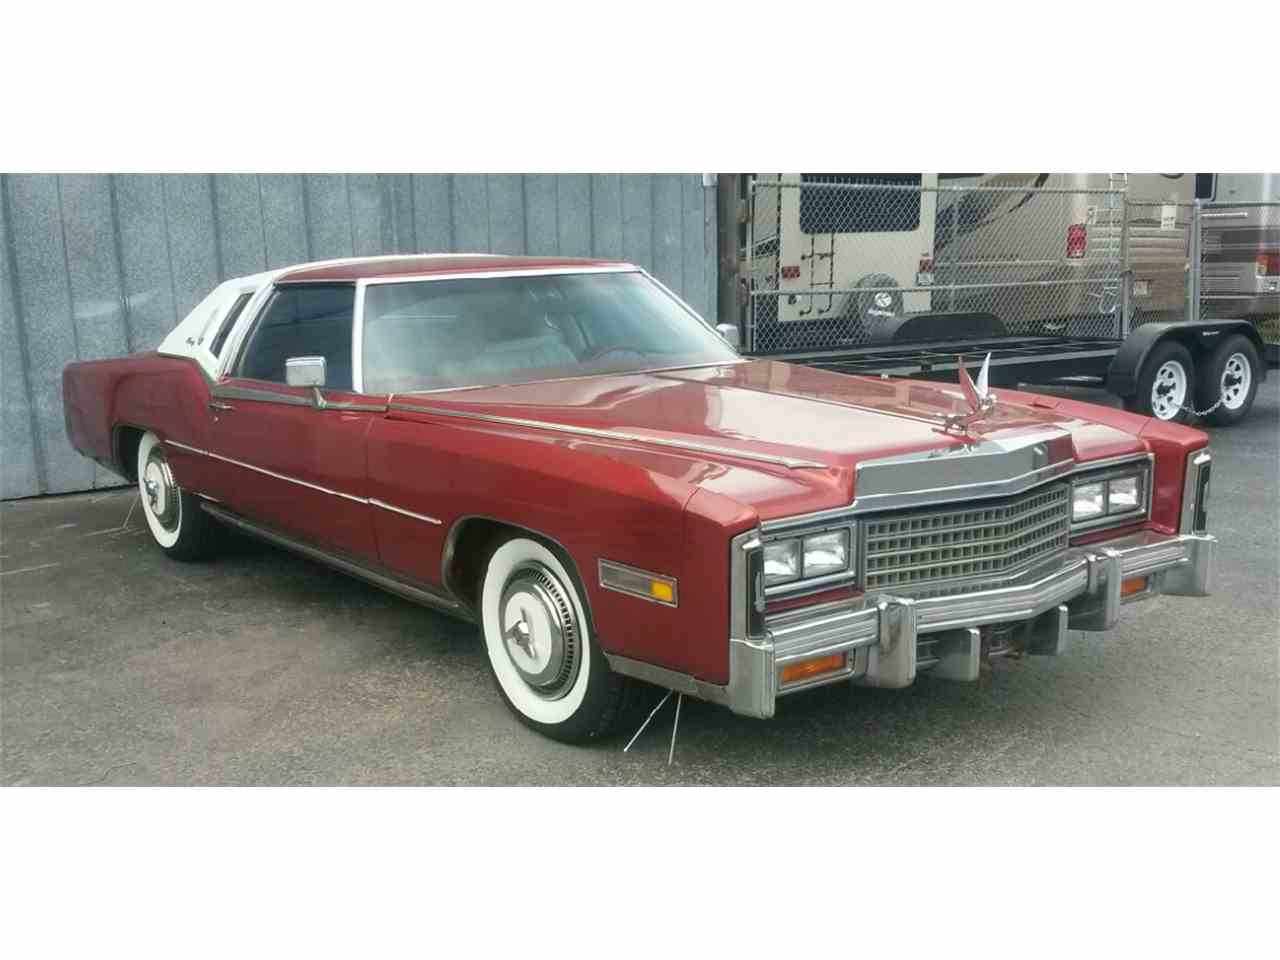 Large Picture of 1978 Cadillac Eldorado Biarritz located in Florida - $13,500.00 Offered by a Private Seller - KQ5W